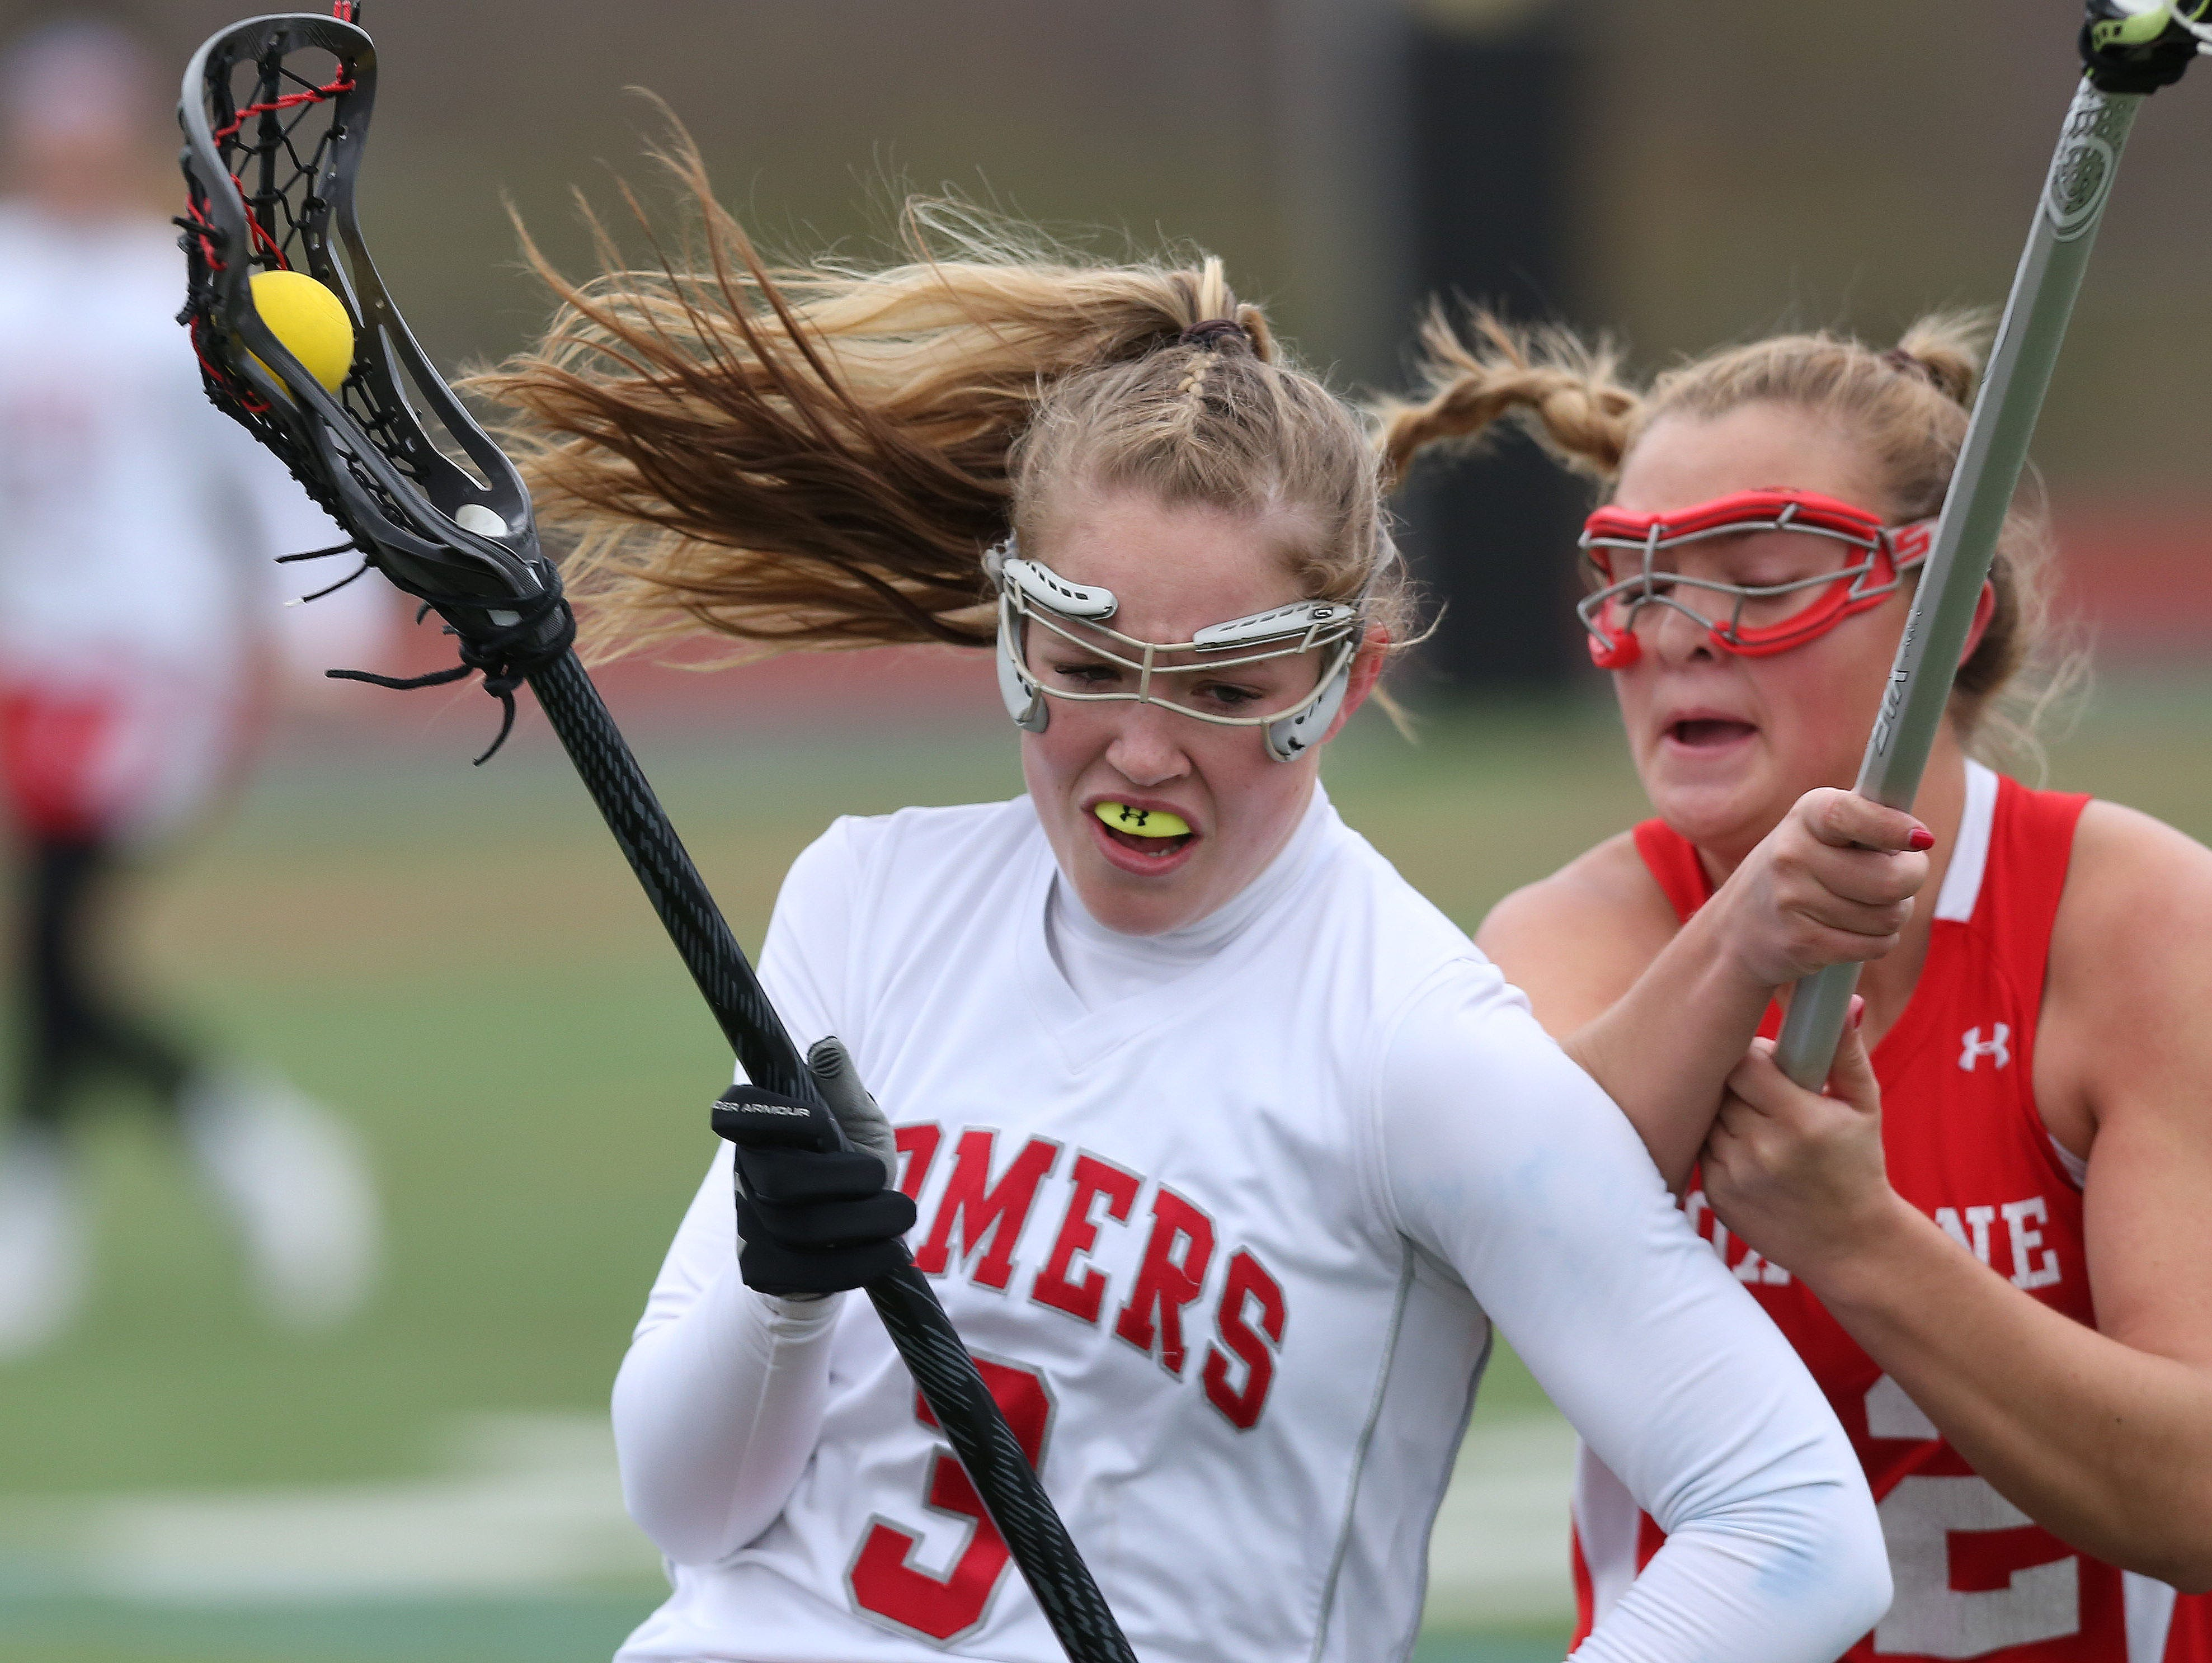 Somers' Gabby Rosenzweig (3) tries to get around Fox Lane's Lindsey West (12) during a girls lacrosse game at Somers High School April 8, 2016. Somers won the game 15-12.